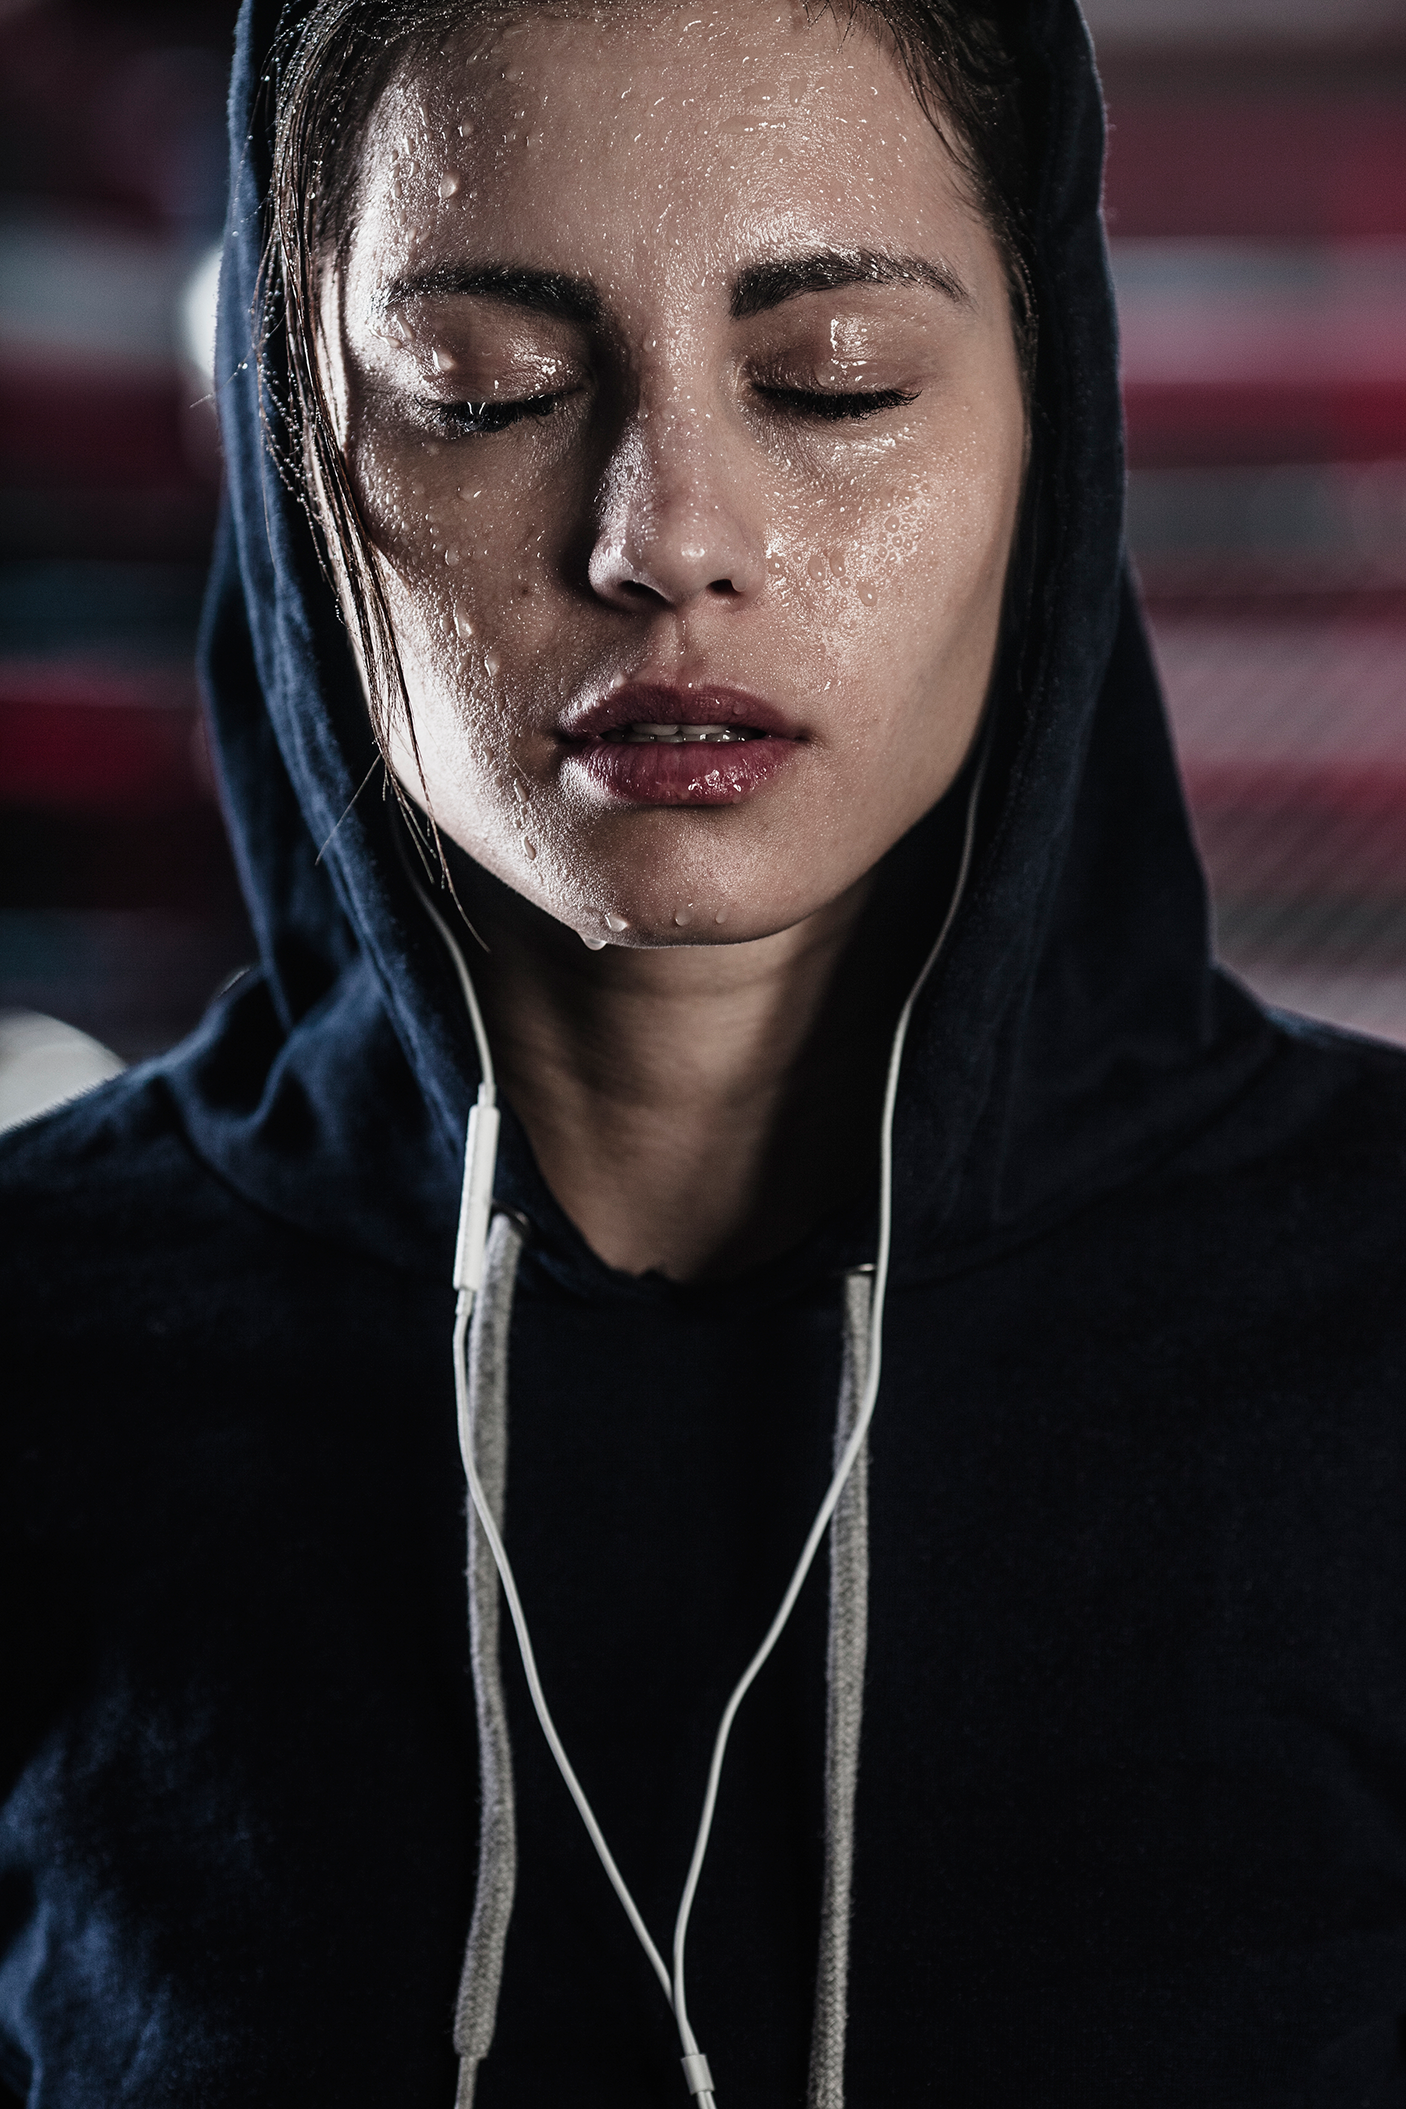 Woman in hooded shirt with sweat on face at gym - stock photo